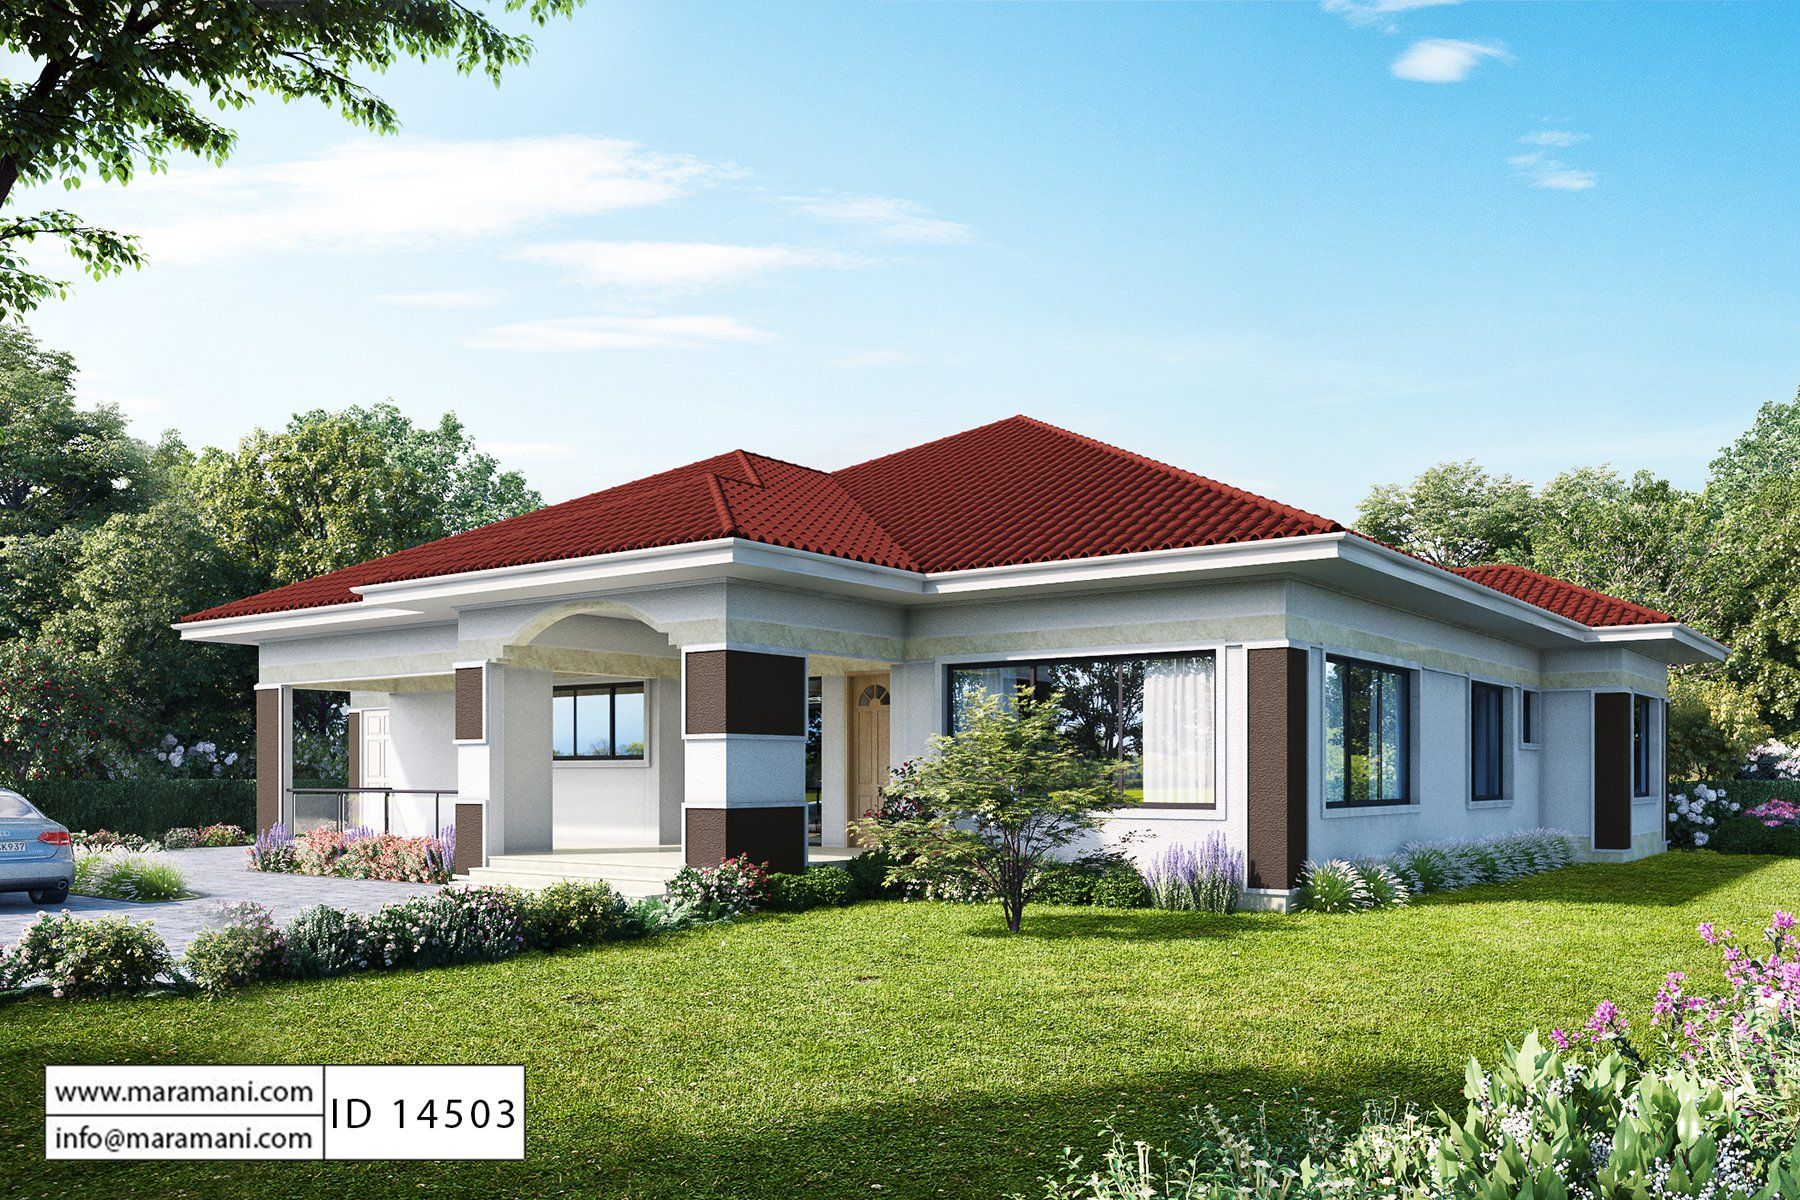 4 Room House Plan - ID 14503 - House in 2020 | Four ...